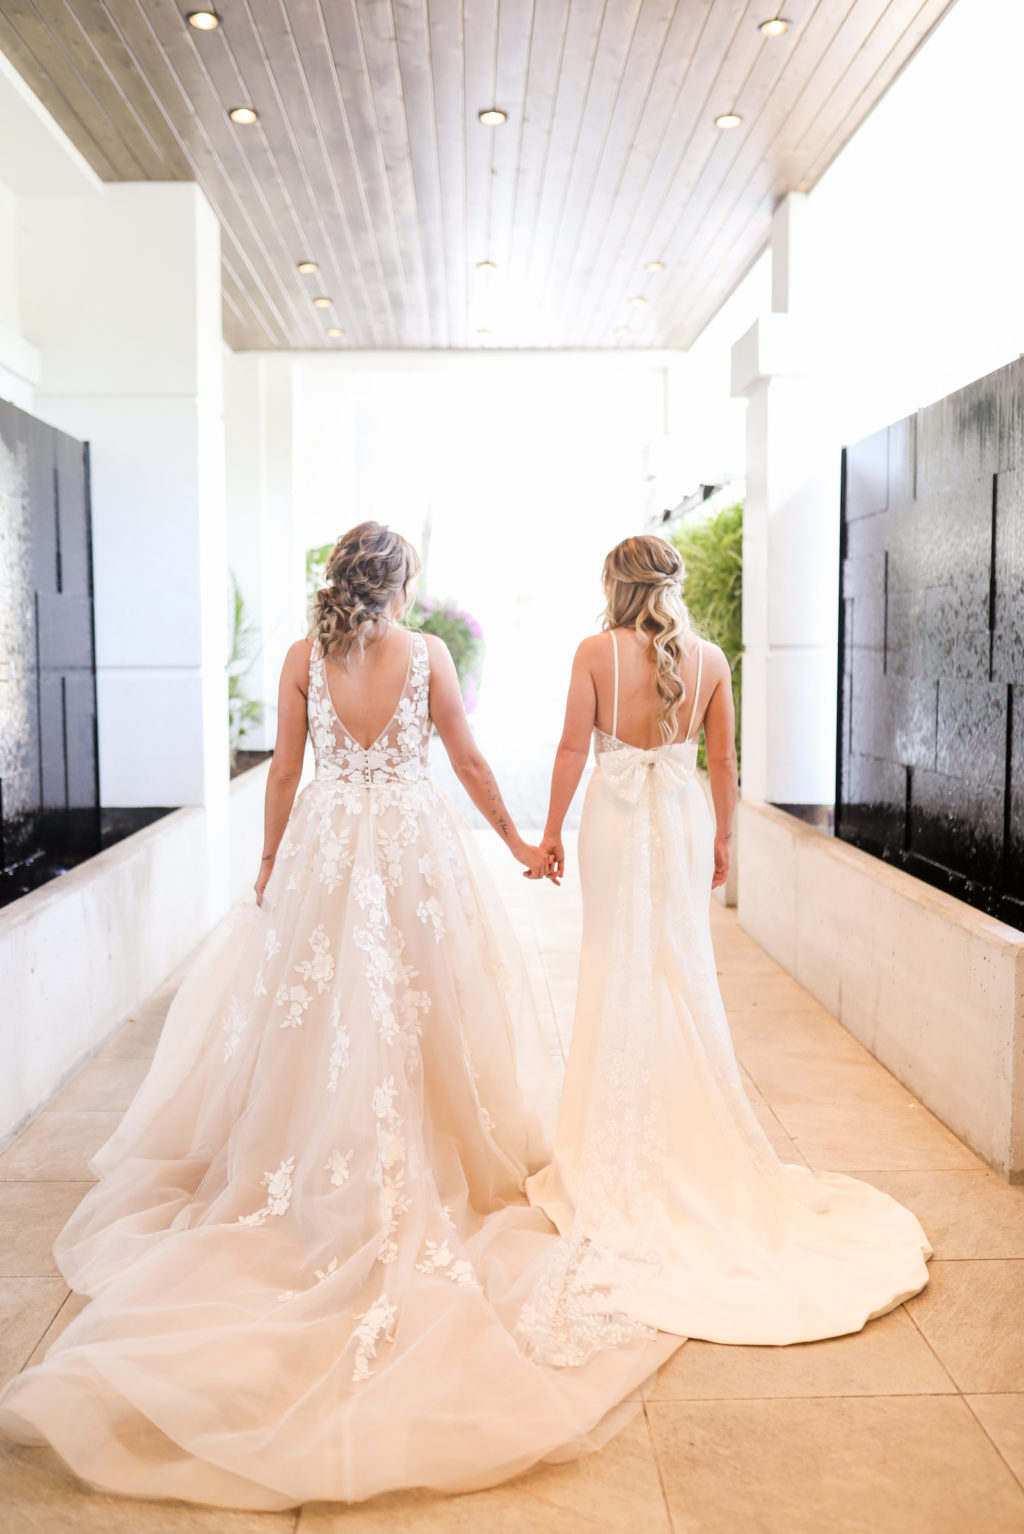 Gay LGBTQ+ Pride Wedding, Lesbian Brides in Romantic Wedding Dresses, Lace and Illusion Open V Back A-Line Wedding Dress, Fitted Open Back Spaghetti Strap Wedding Dress with Bow   Tampa Bay Wedding Venue Hotel Alba